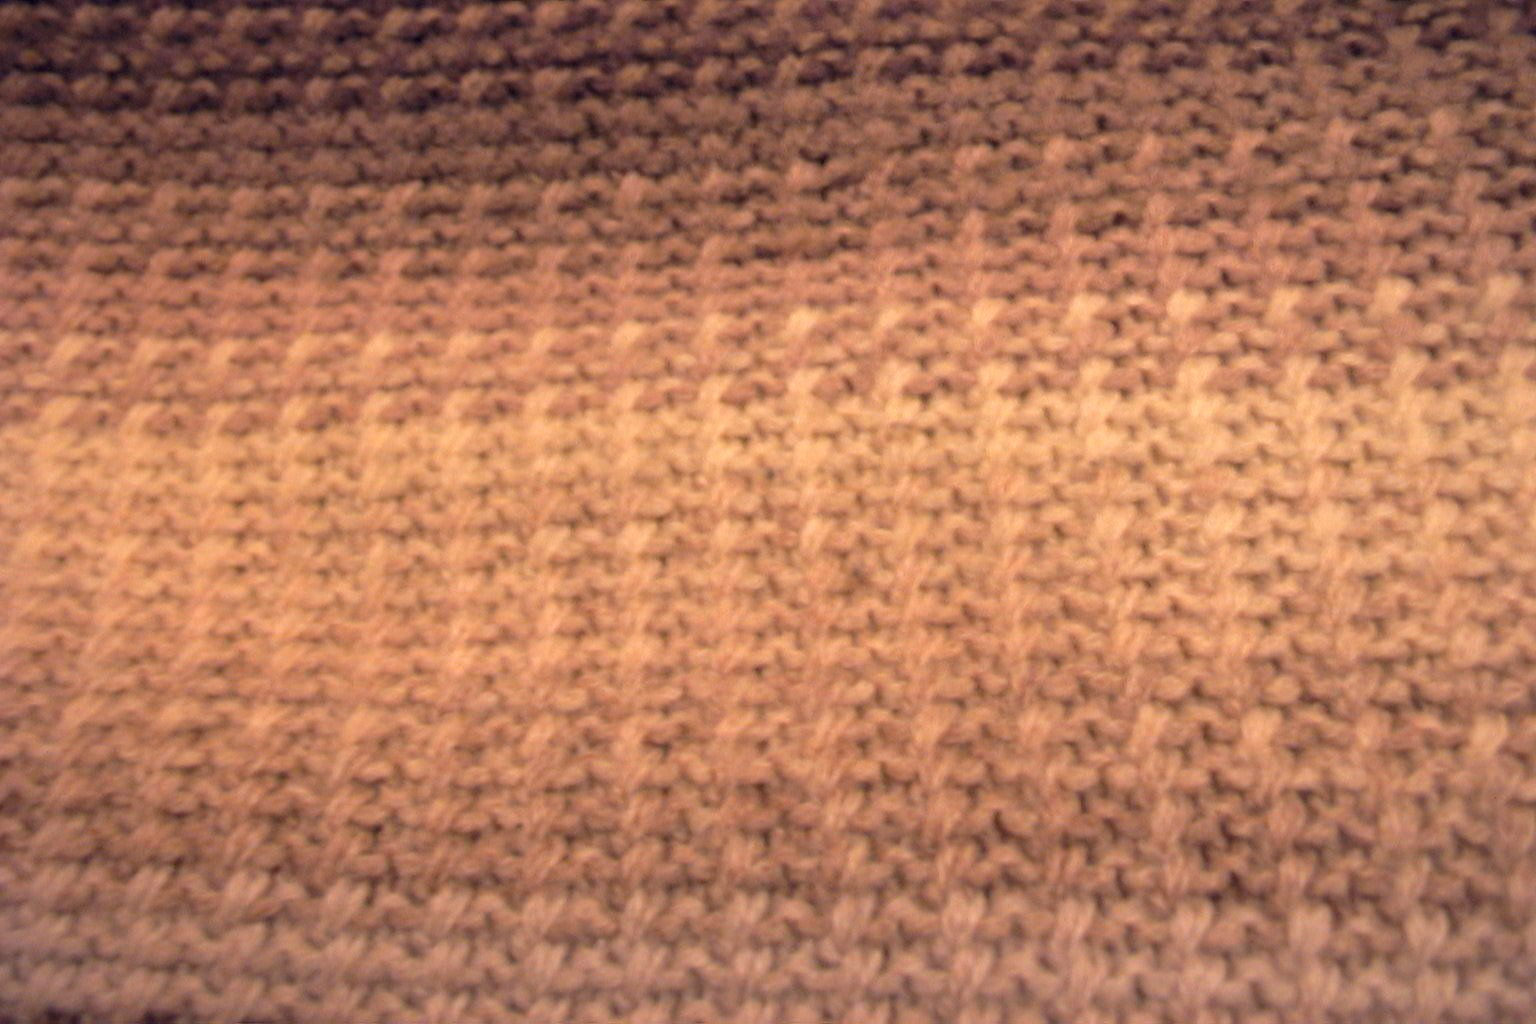 Free wool texture stock photo freeimages.com